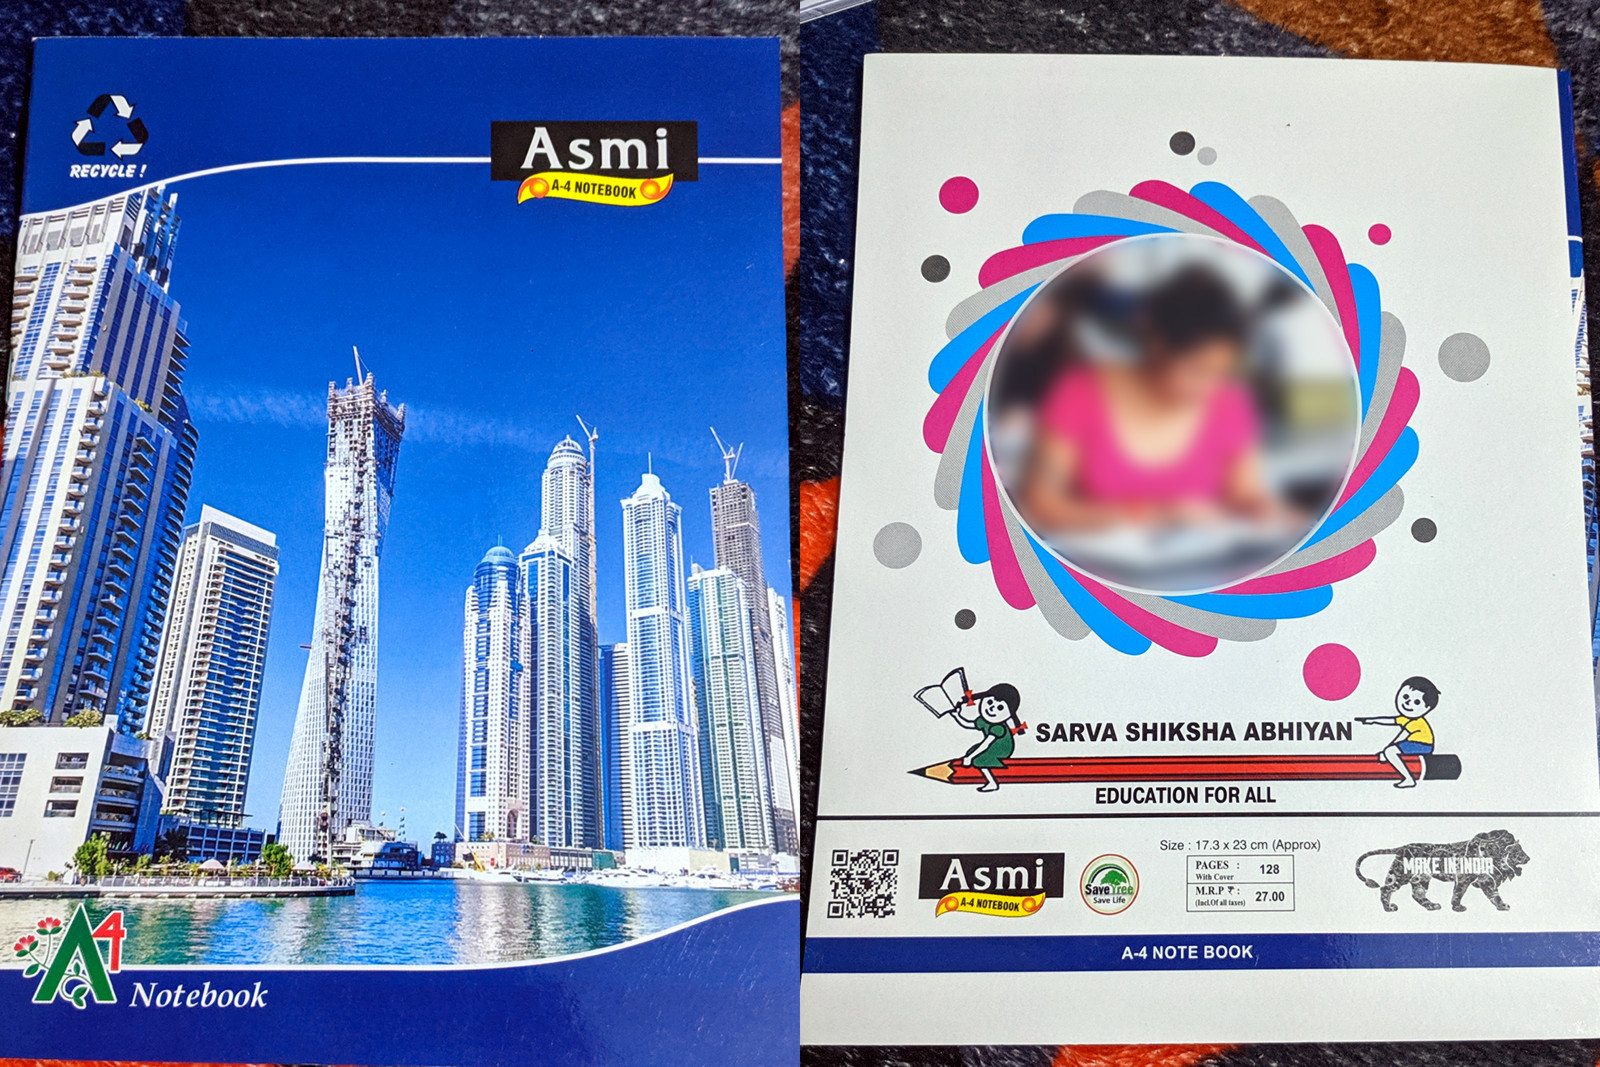 Front and back cover of an Asmi A4 Notebook from India